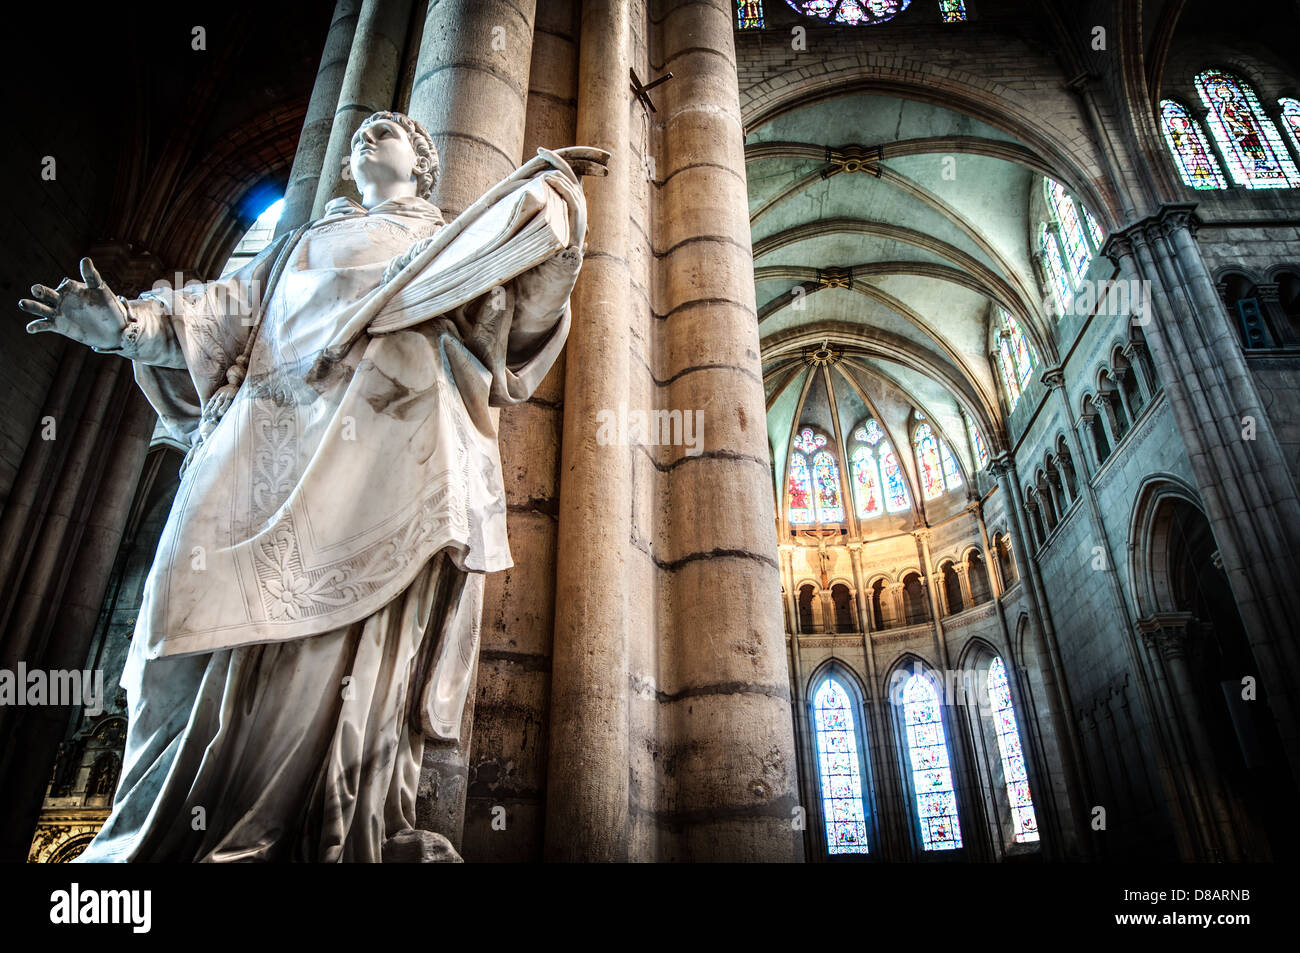 Interior of old catholic church in France, Europe. Statue of man and huge column in foreground with grand arch and - Stock Image